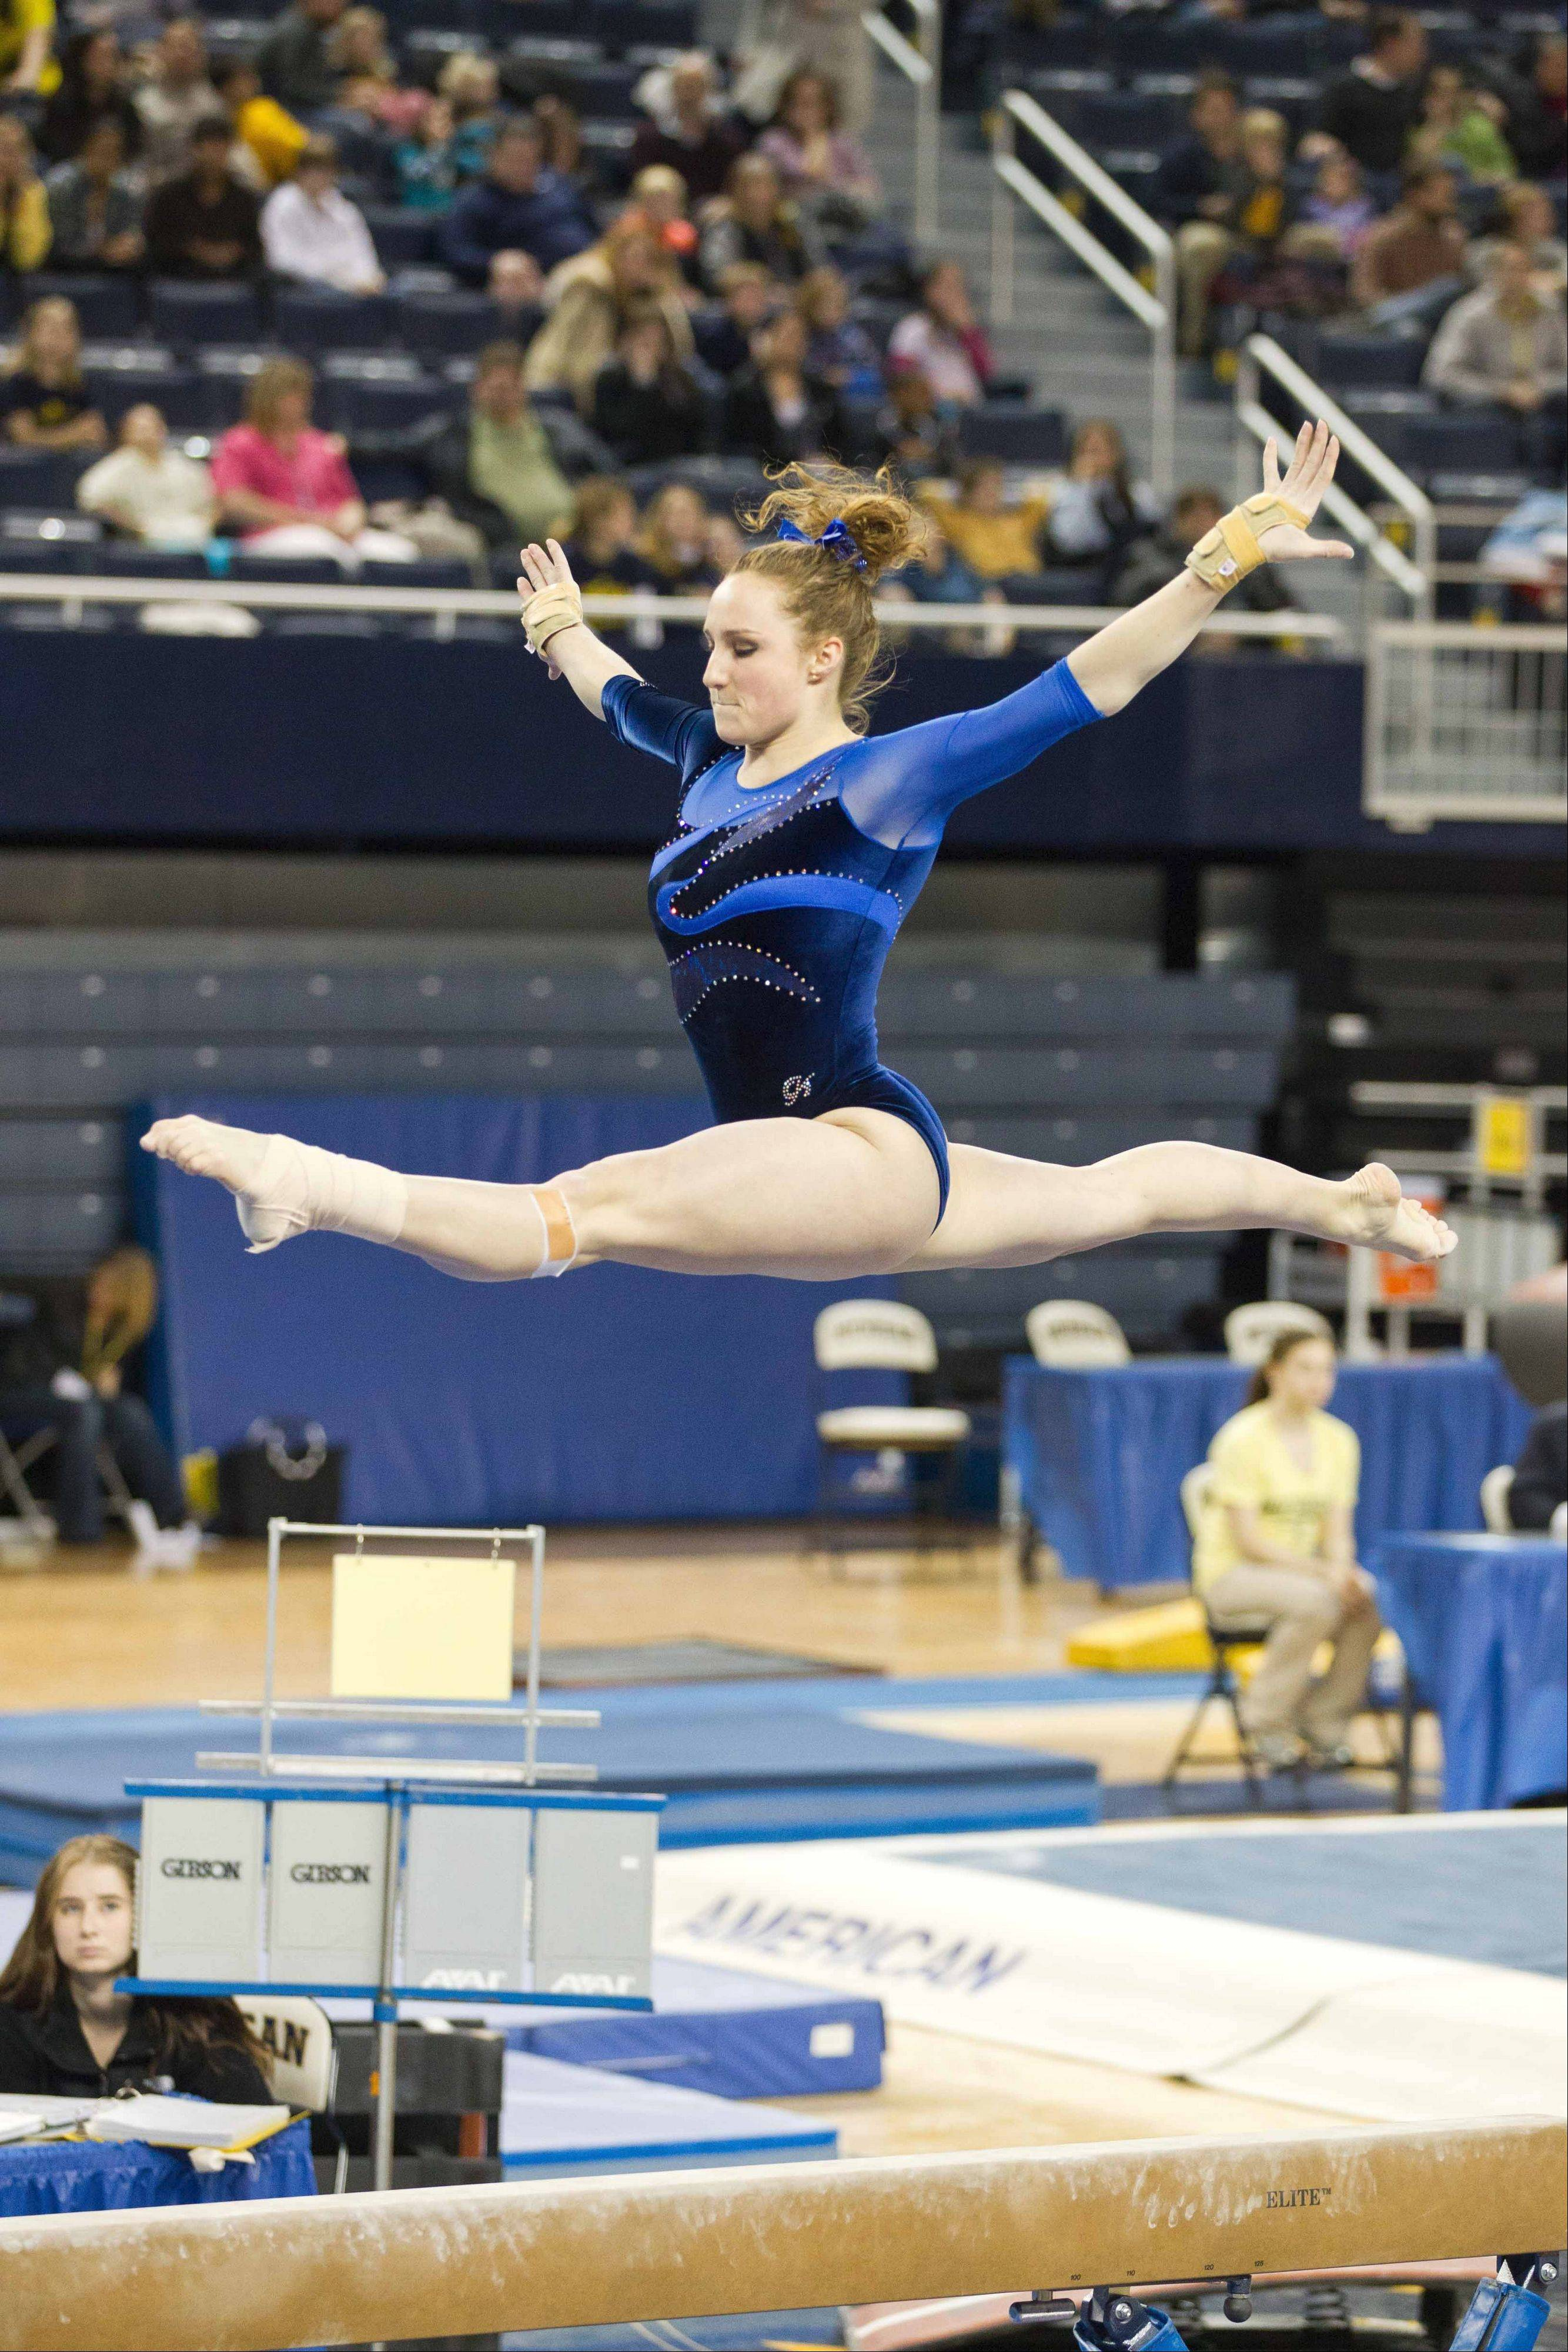 Michigan senior Katie Zurales, a Wheaton Warrenville South grad, has soared for the Wolverines this season on the balance beam and unever bars. A pre-med major, she wants to become a doctor when her college career ends.